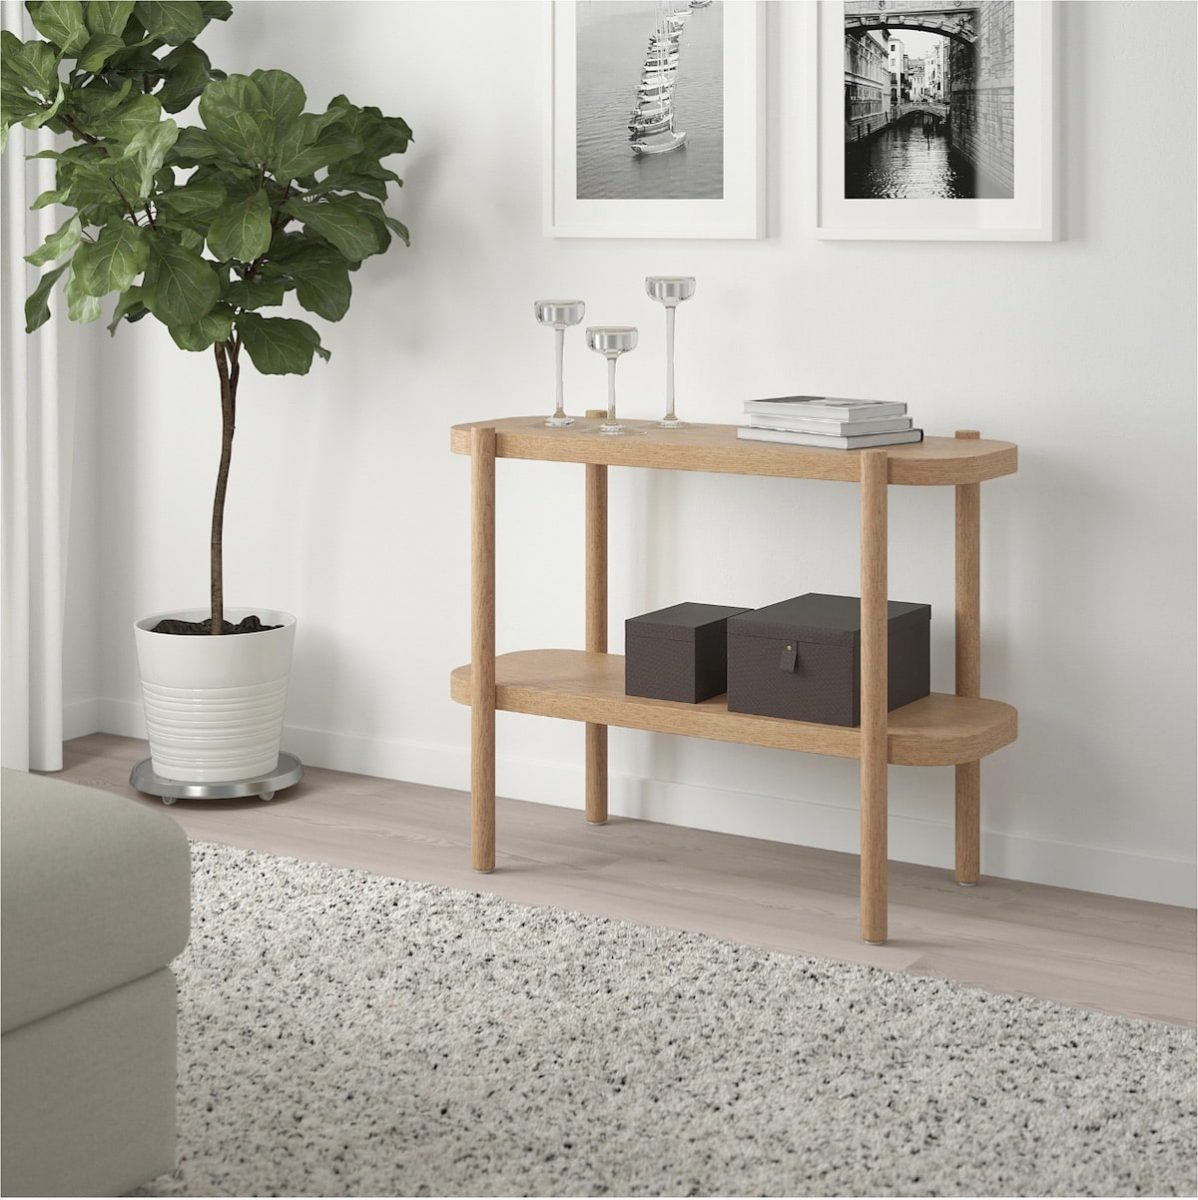 Latest IKEA product LISTERBY White Stained Oak Console Table